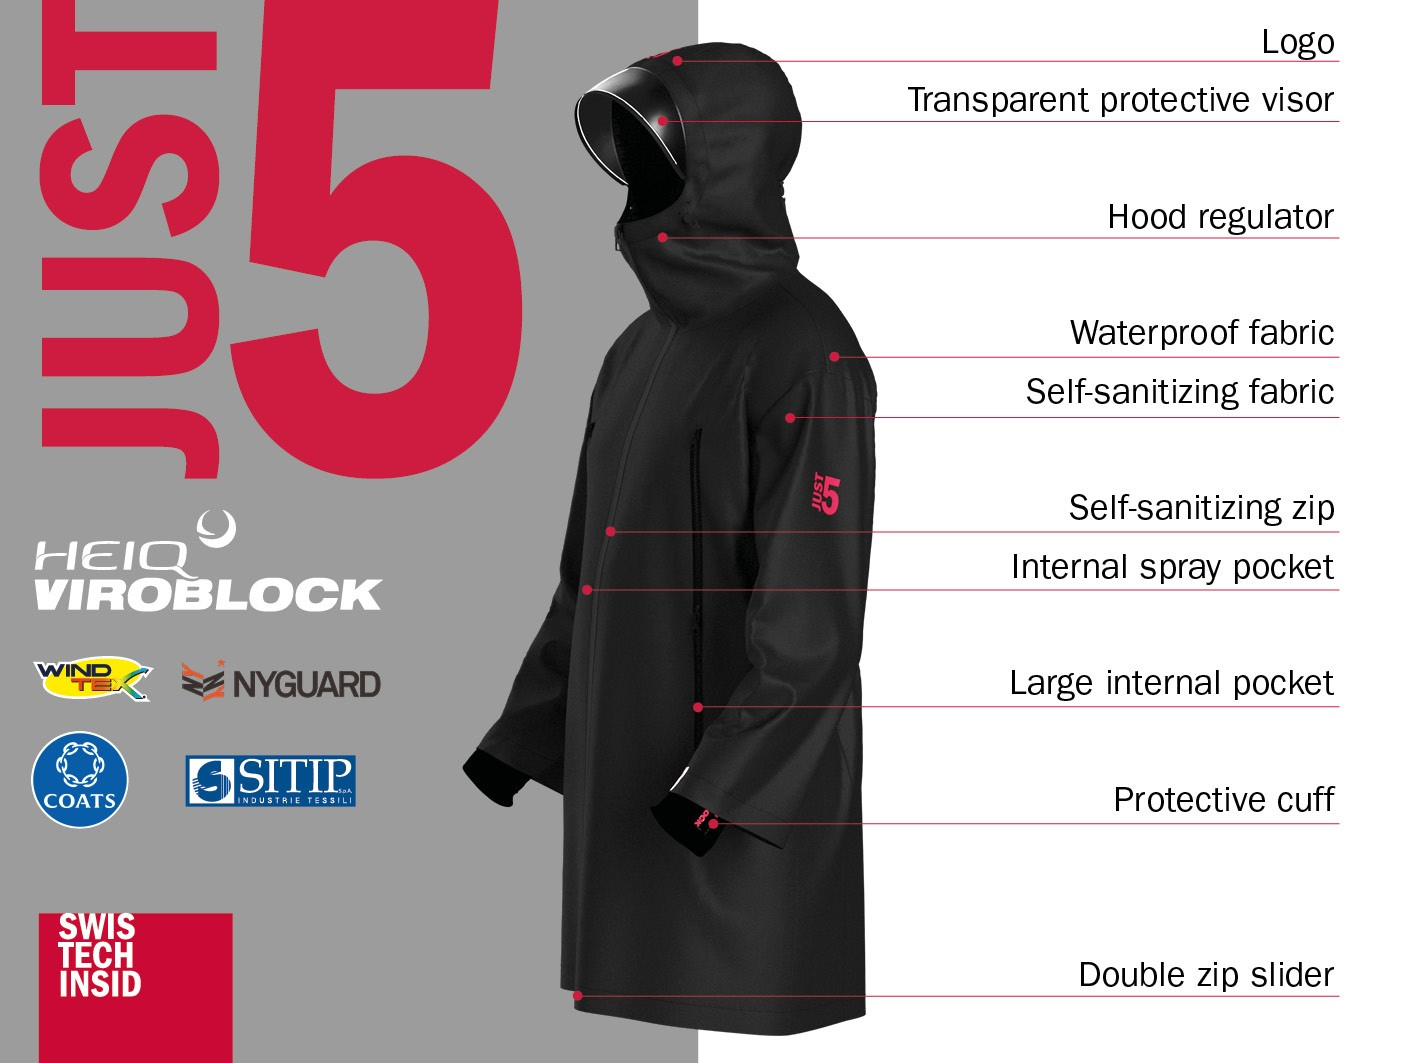 JUST5 by 2A, Coats, HeiQ,  Windtex Vagotex and Sitip, a multi-functional jacket featuring HeiQ Viroblock technology in all the components. Pre-order on Kickstarter starts on 26 August.  © HeiQ.